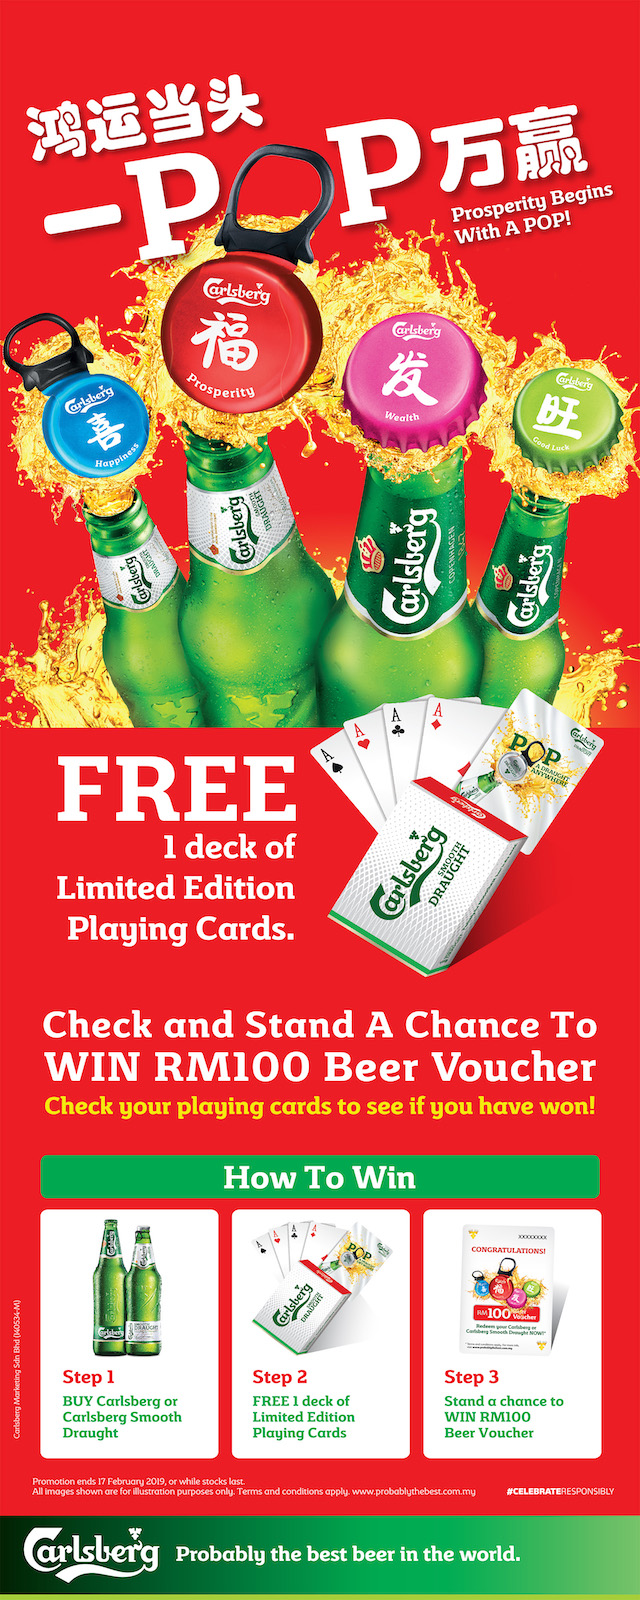 """Prosperity Begins With A POP!"" at bistros, restaurants and pubs when you enjoy Carlsberg or Carlsberg Smooth Draught and get a deck of playing cards. Check the deck to see if you've won a RM100 beer voucher!"